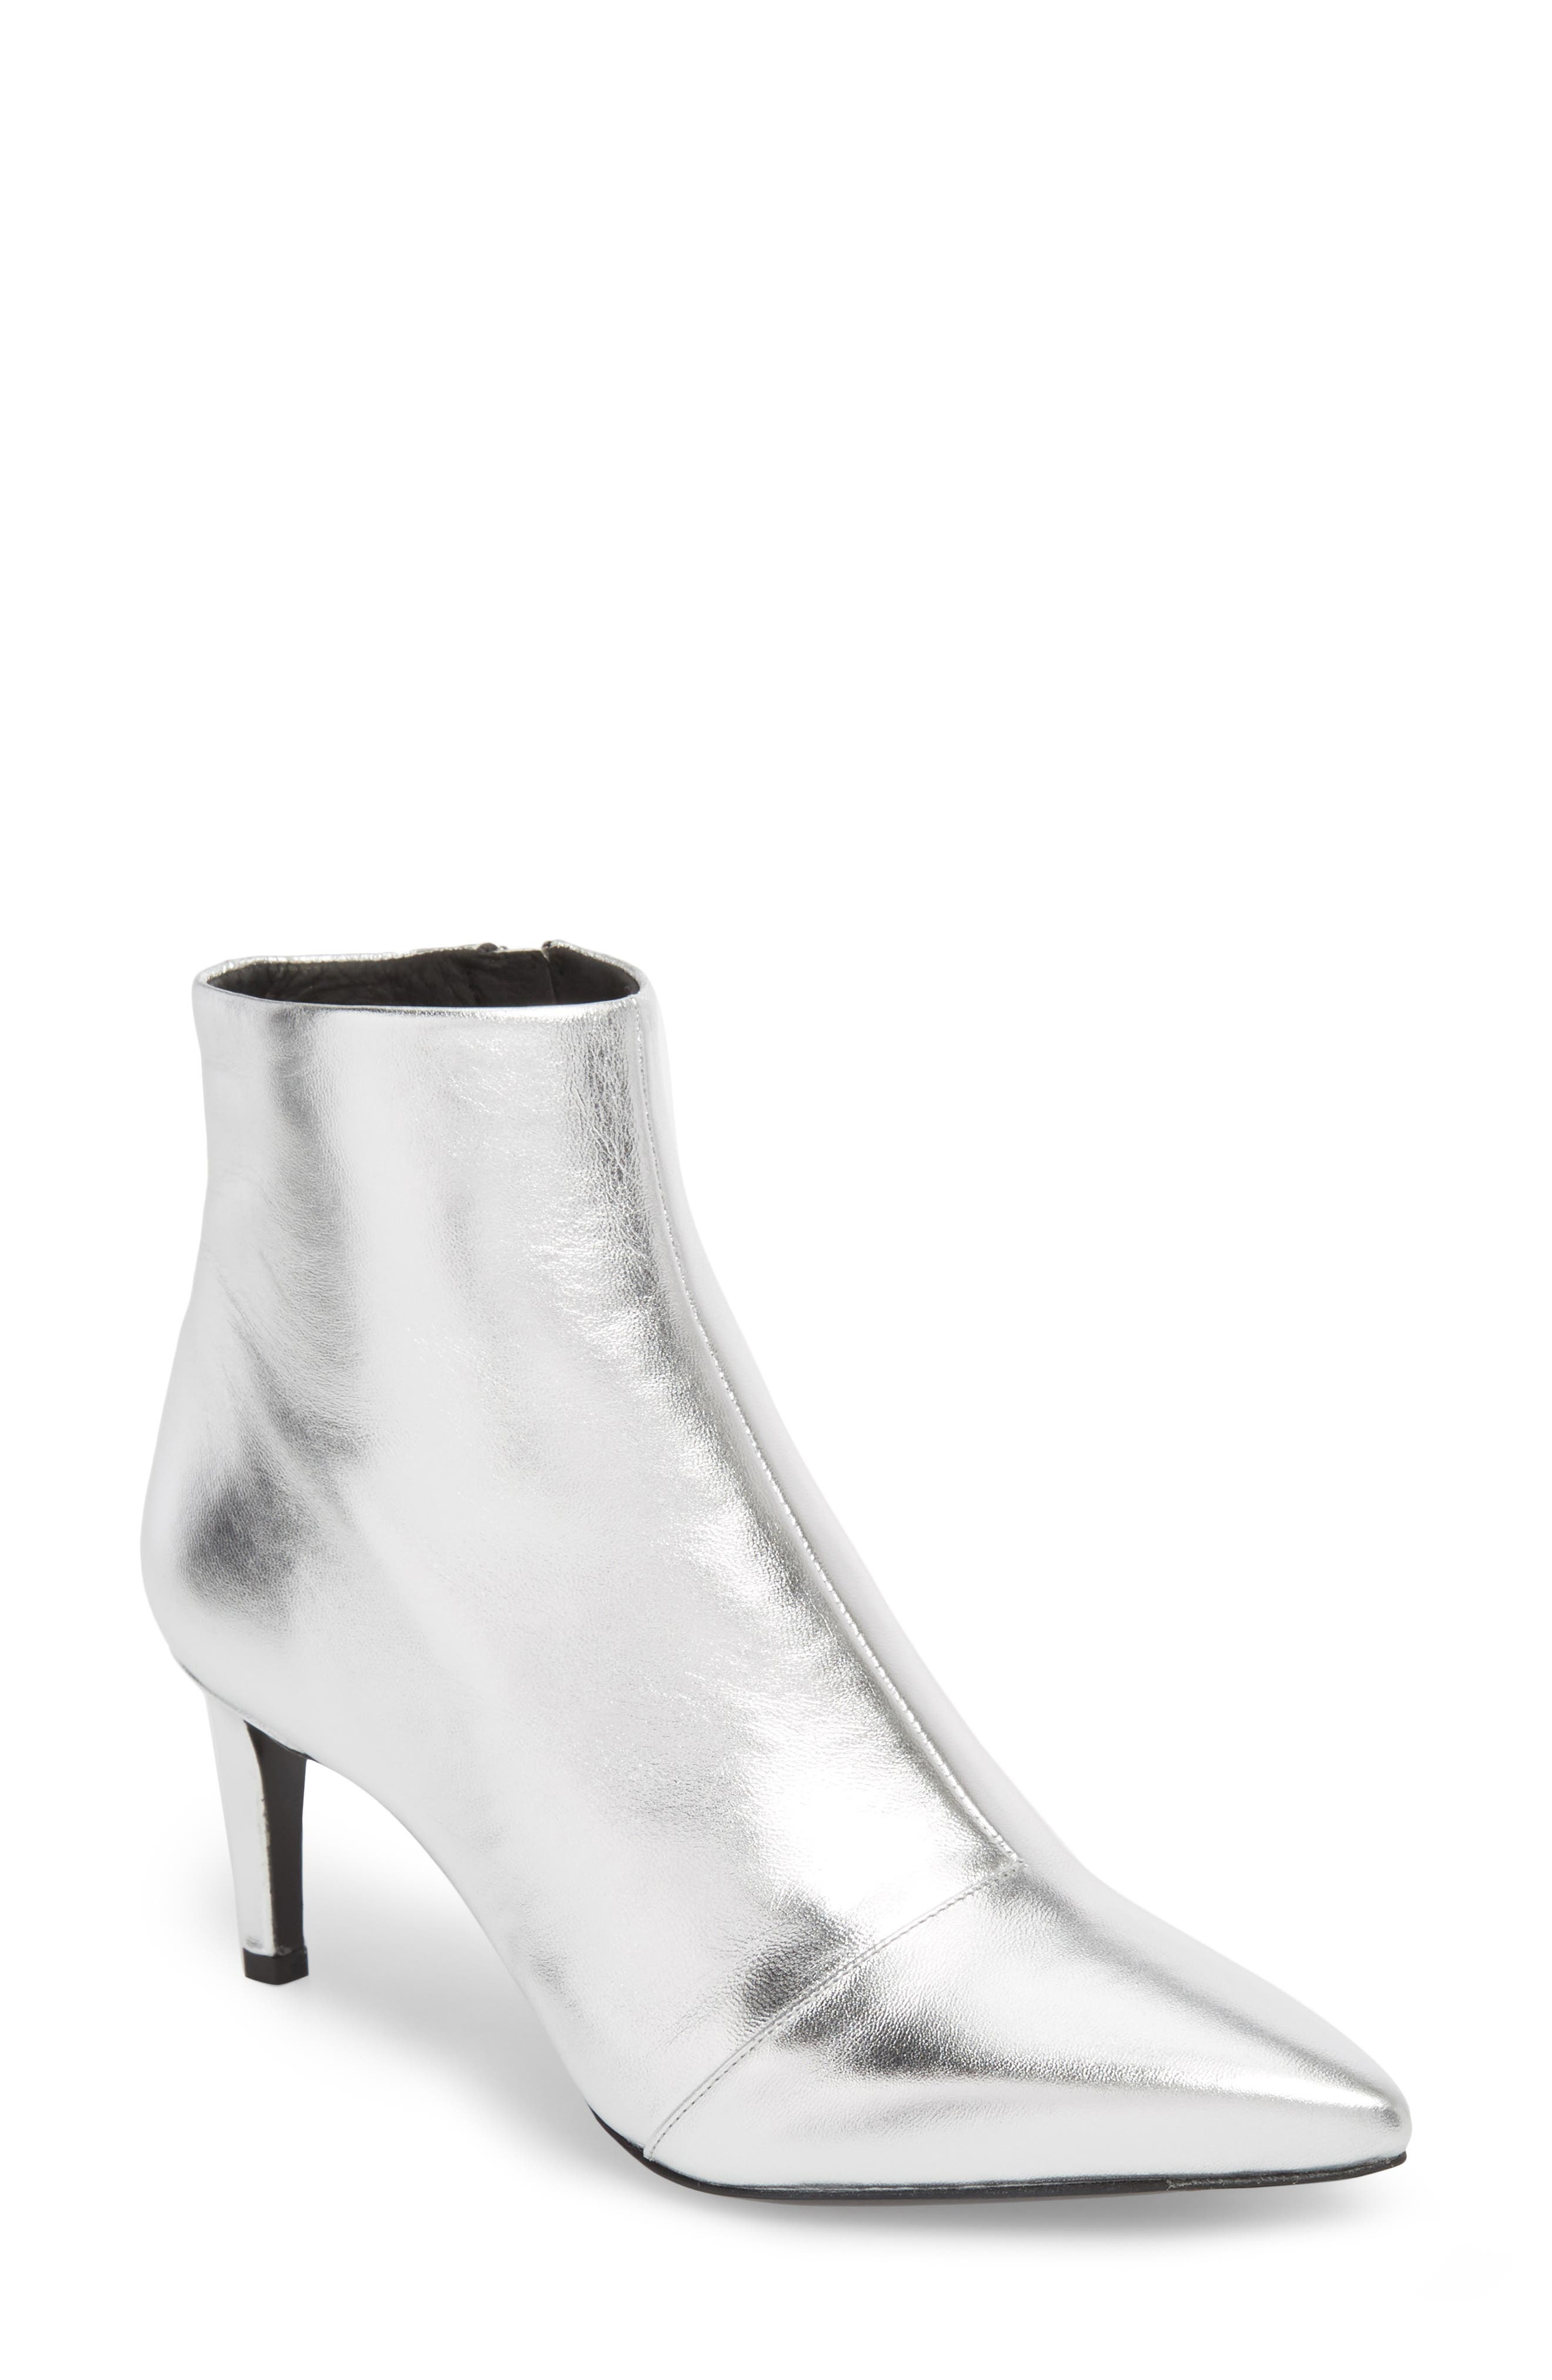 Beha Pointy Toe Bootie,                             Main thumbnail 1, color,                             Silver